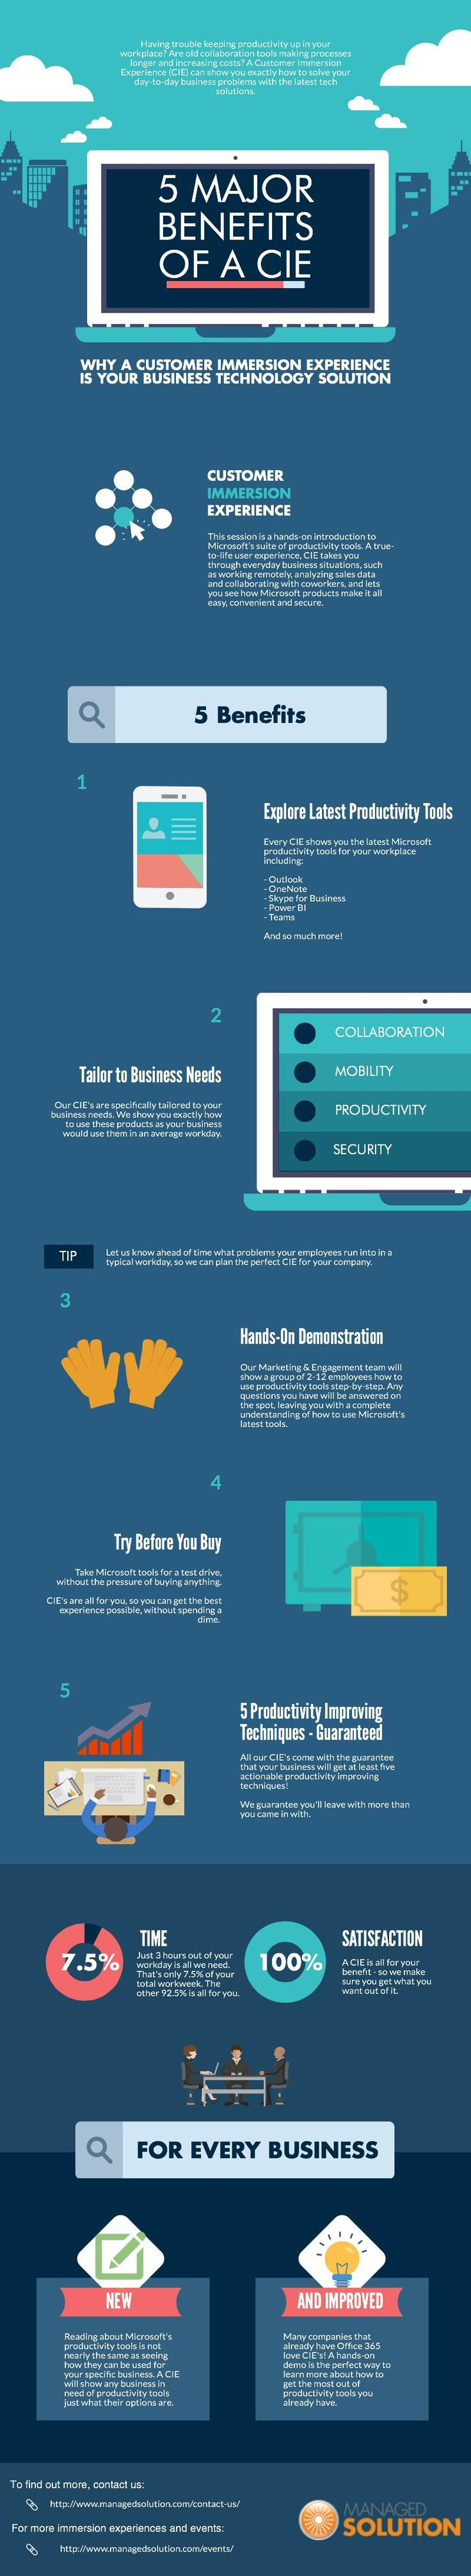 (INFOGRAPHIC: 5 Major Benefits of a CIE) http://www.managedsolution.com/?p=13278 #CIE, #Cloud_Solutions, #Increase_Efficiency, #Office365, #Techtips